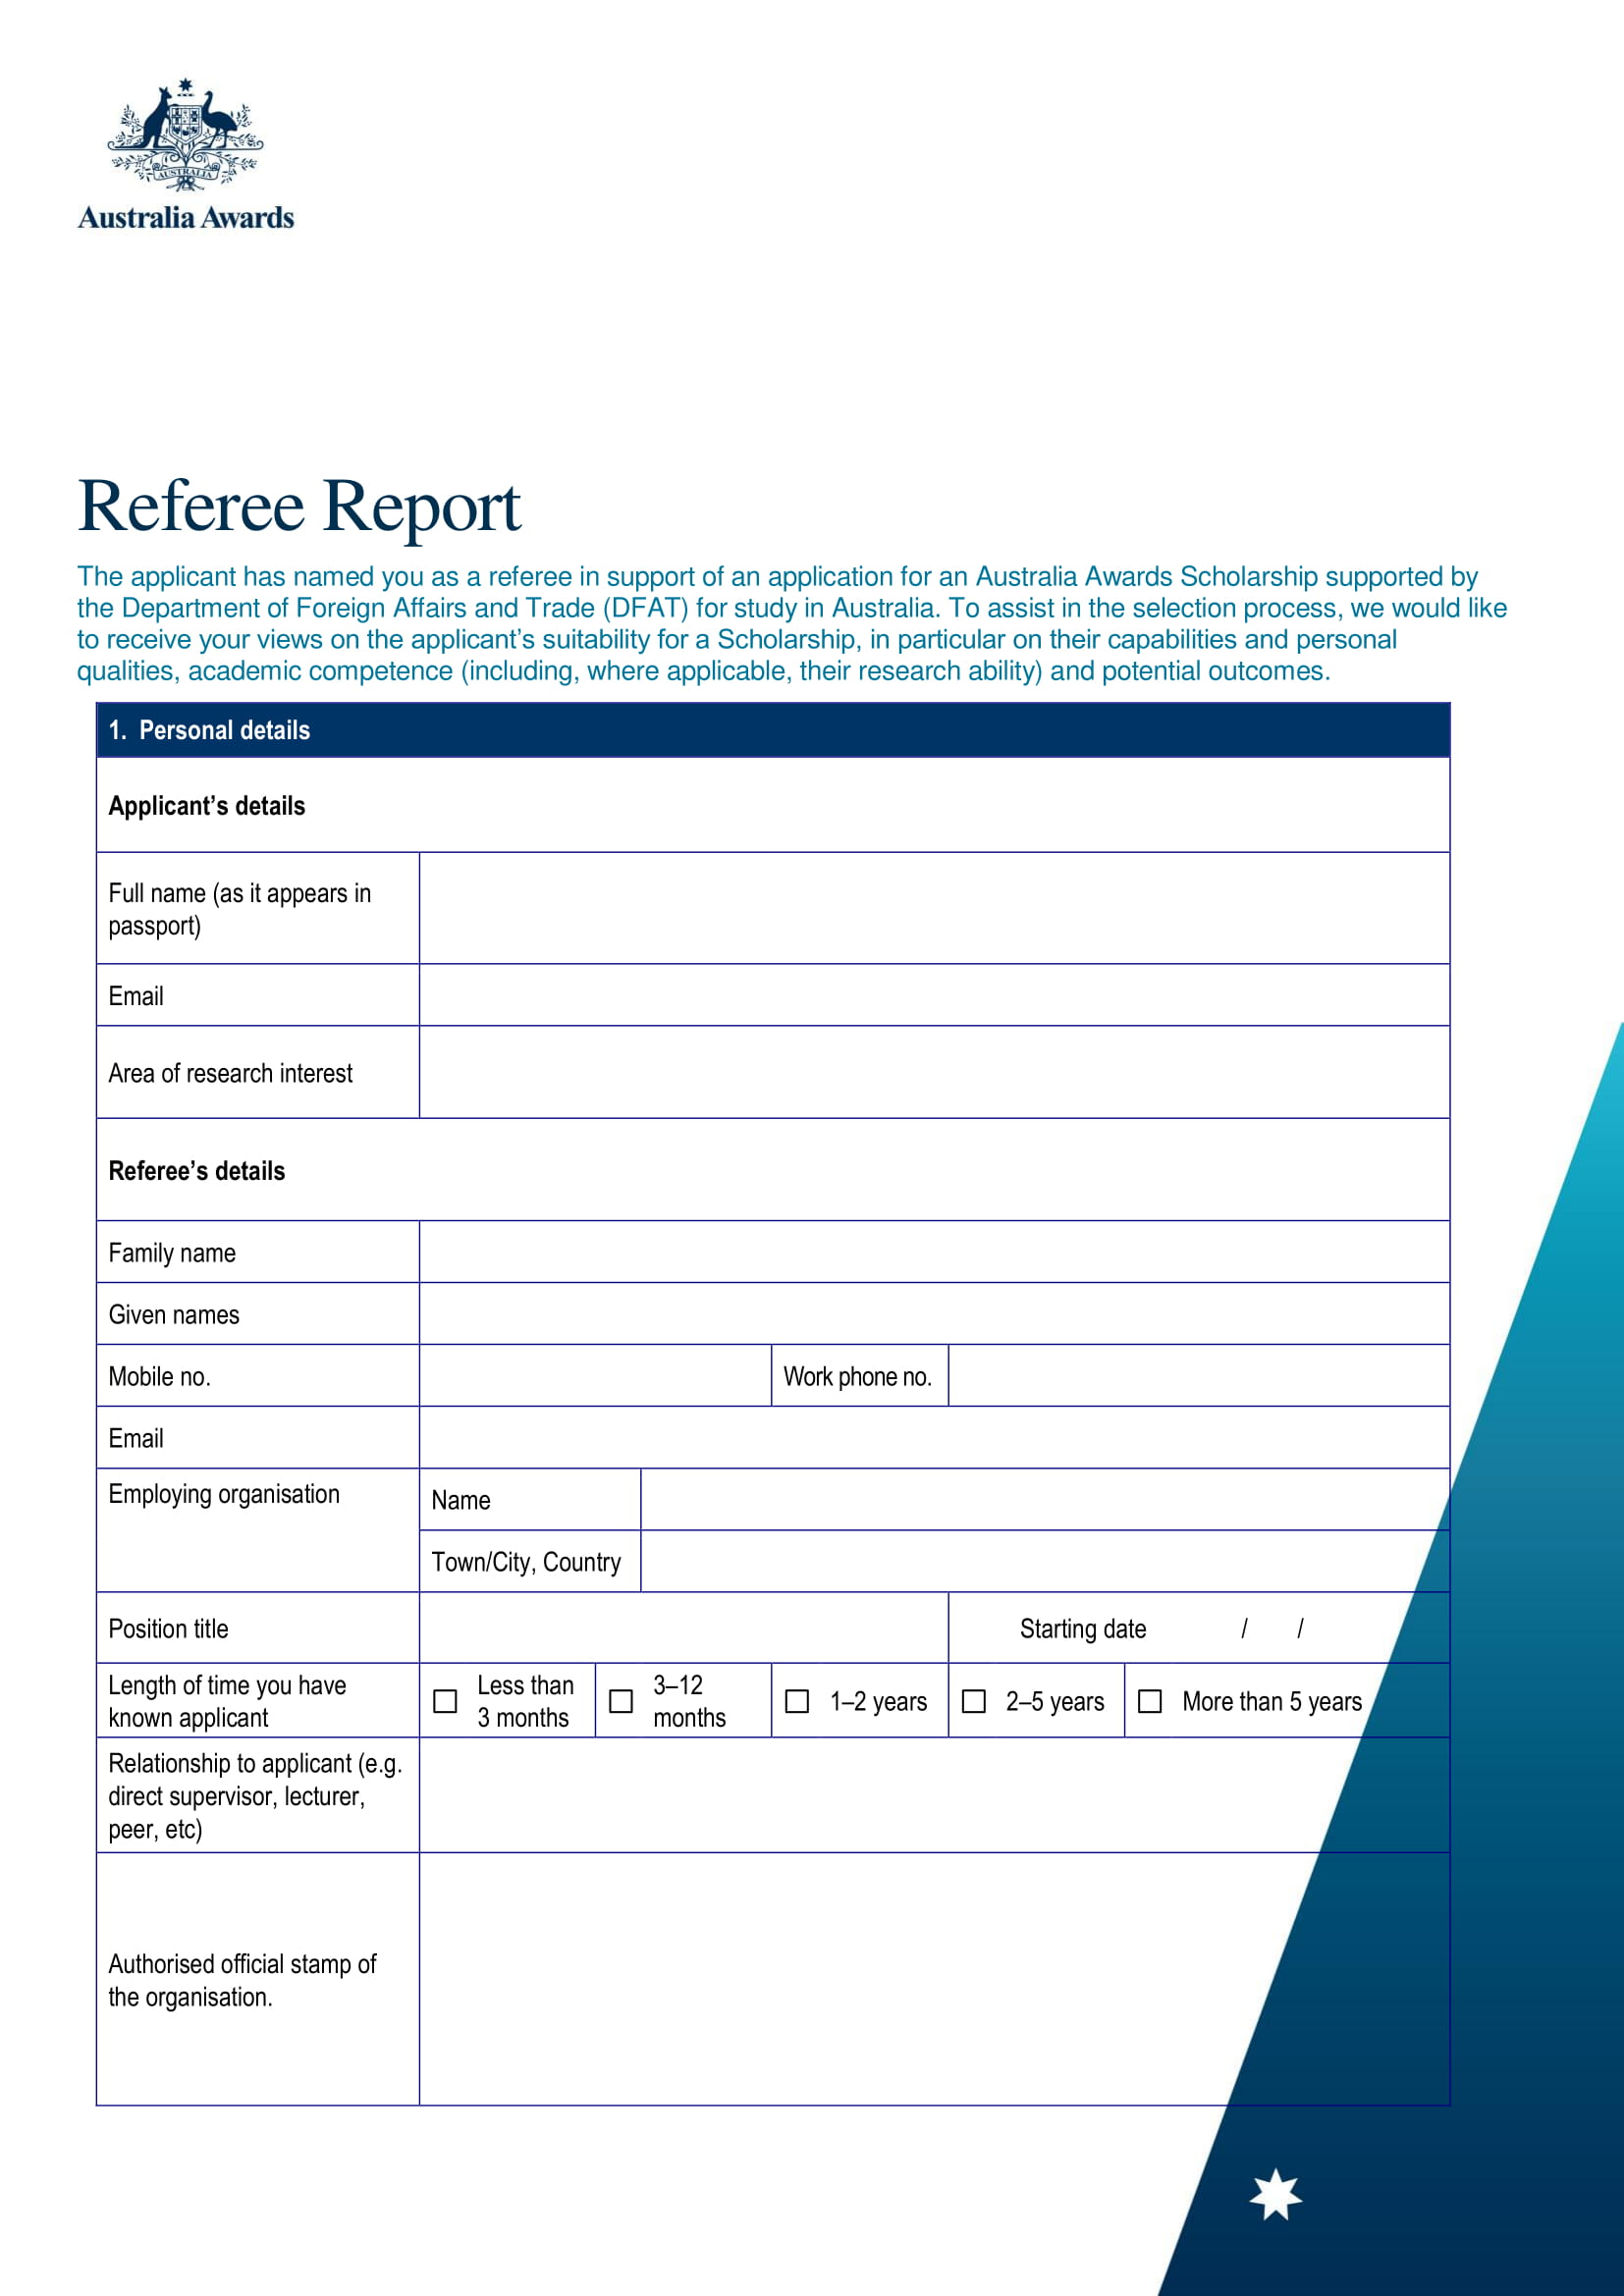 basic applicant's refree report form 1